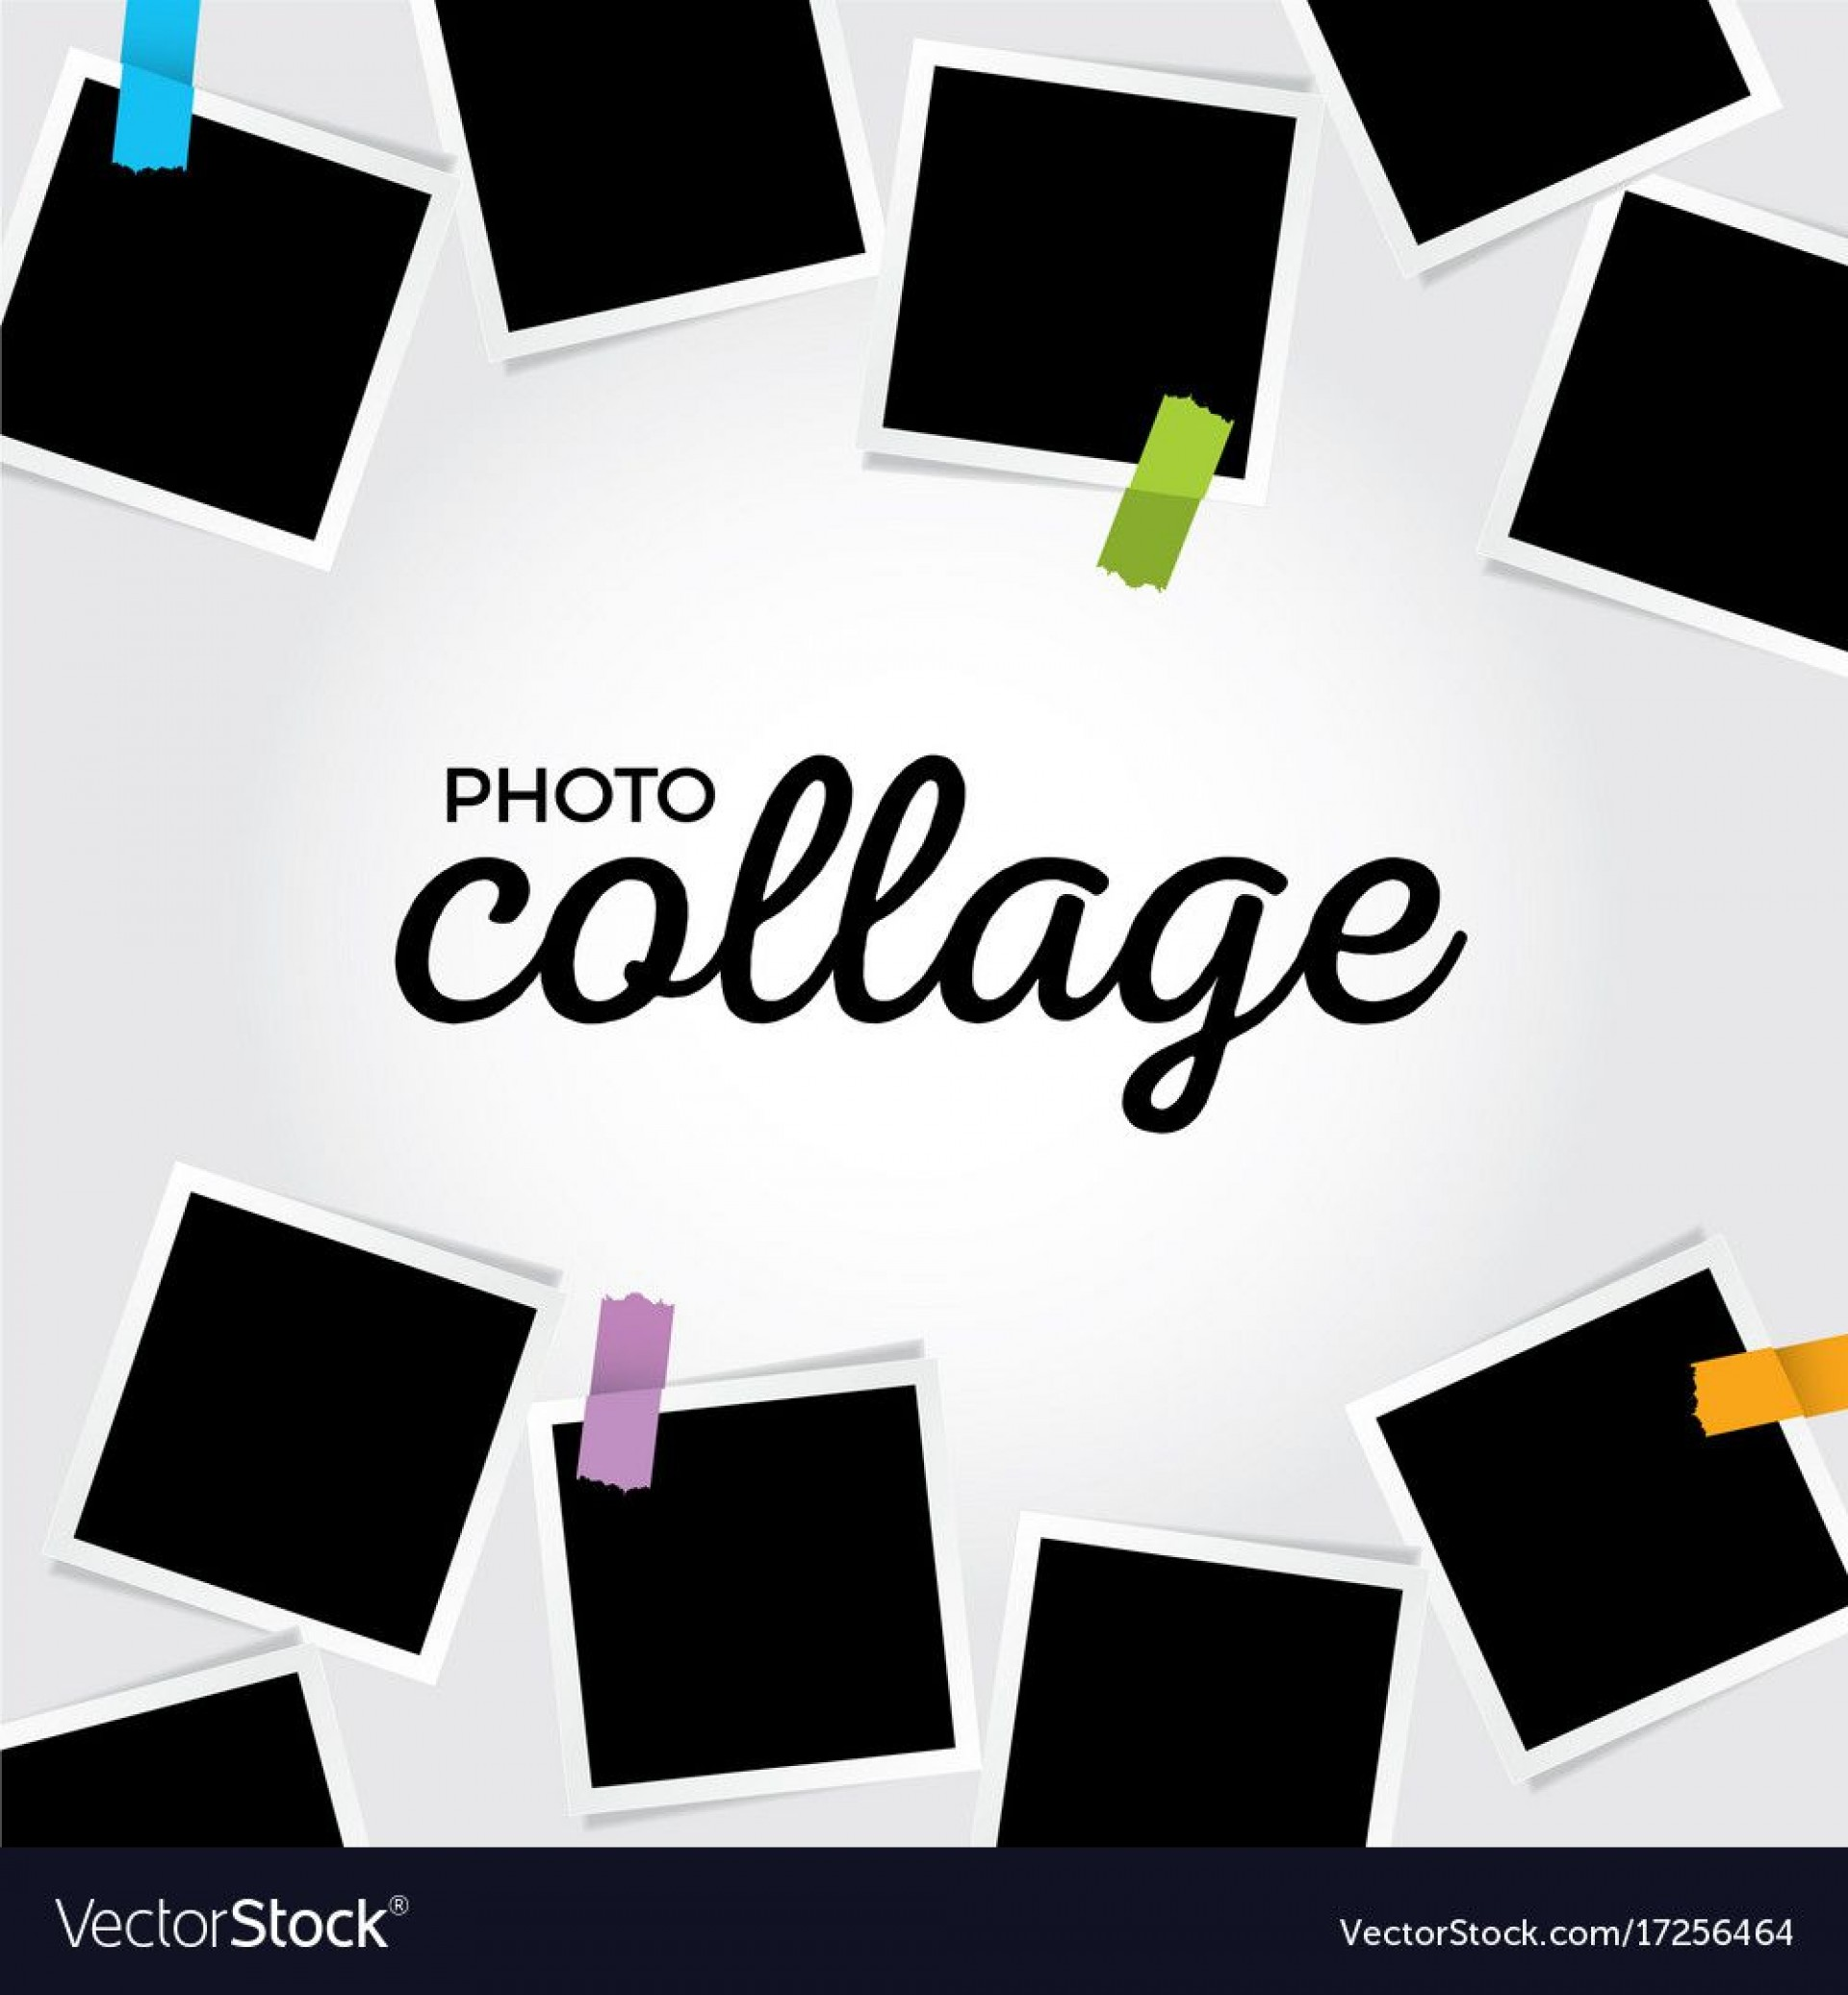 006 Dreaded Free Photo Collage Template No Download Image 1920